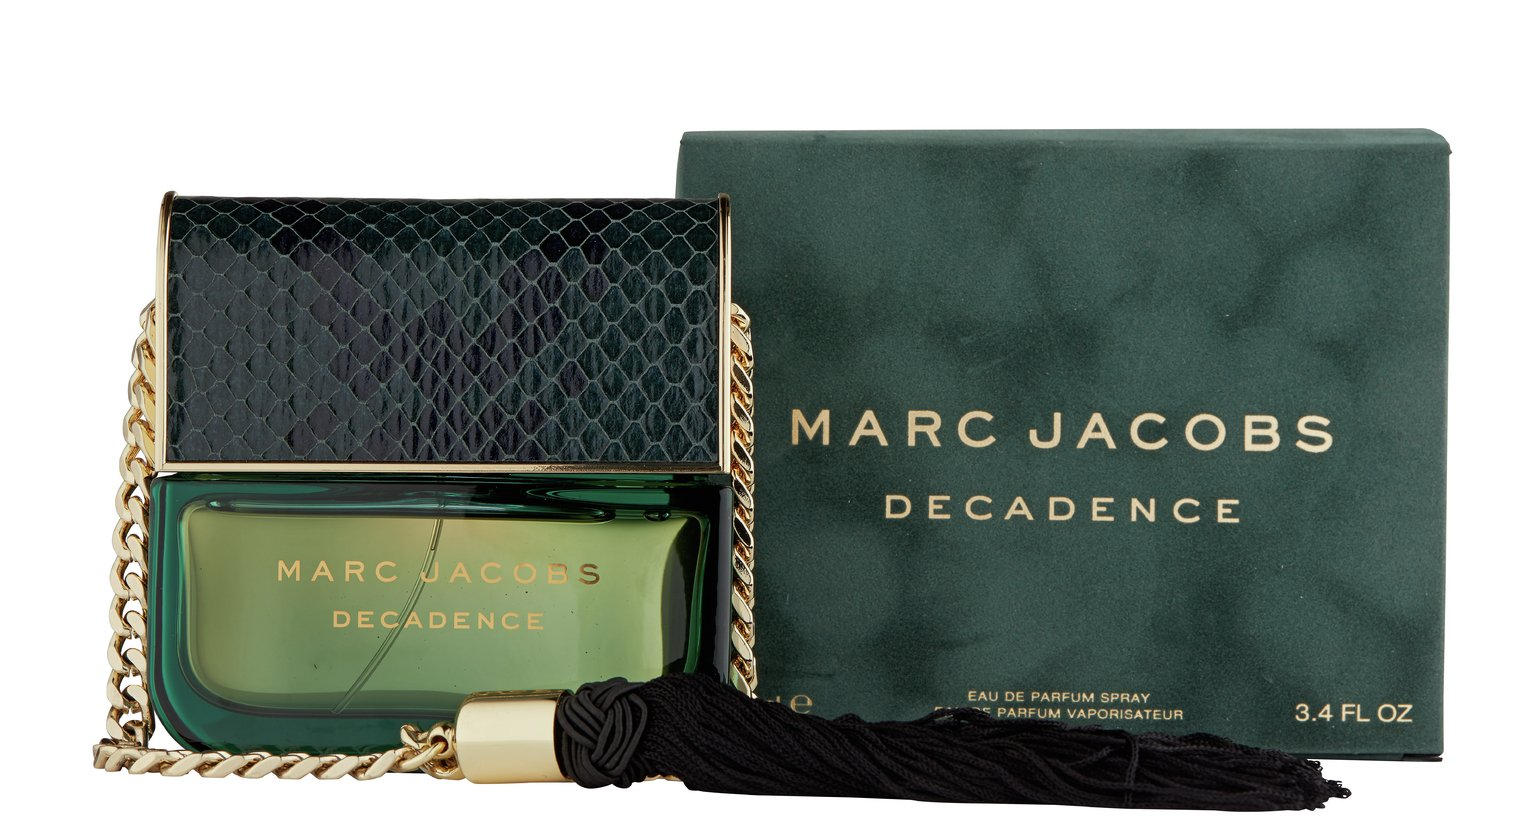 Marc Jacobs Decadence for Women Eau de Parfum - 100ml